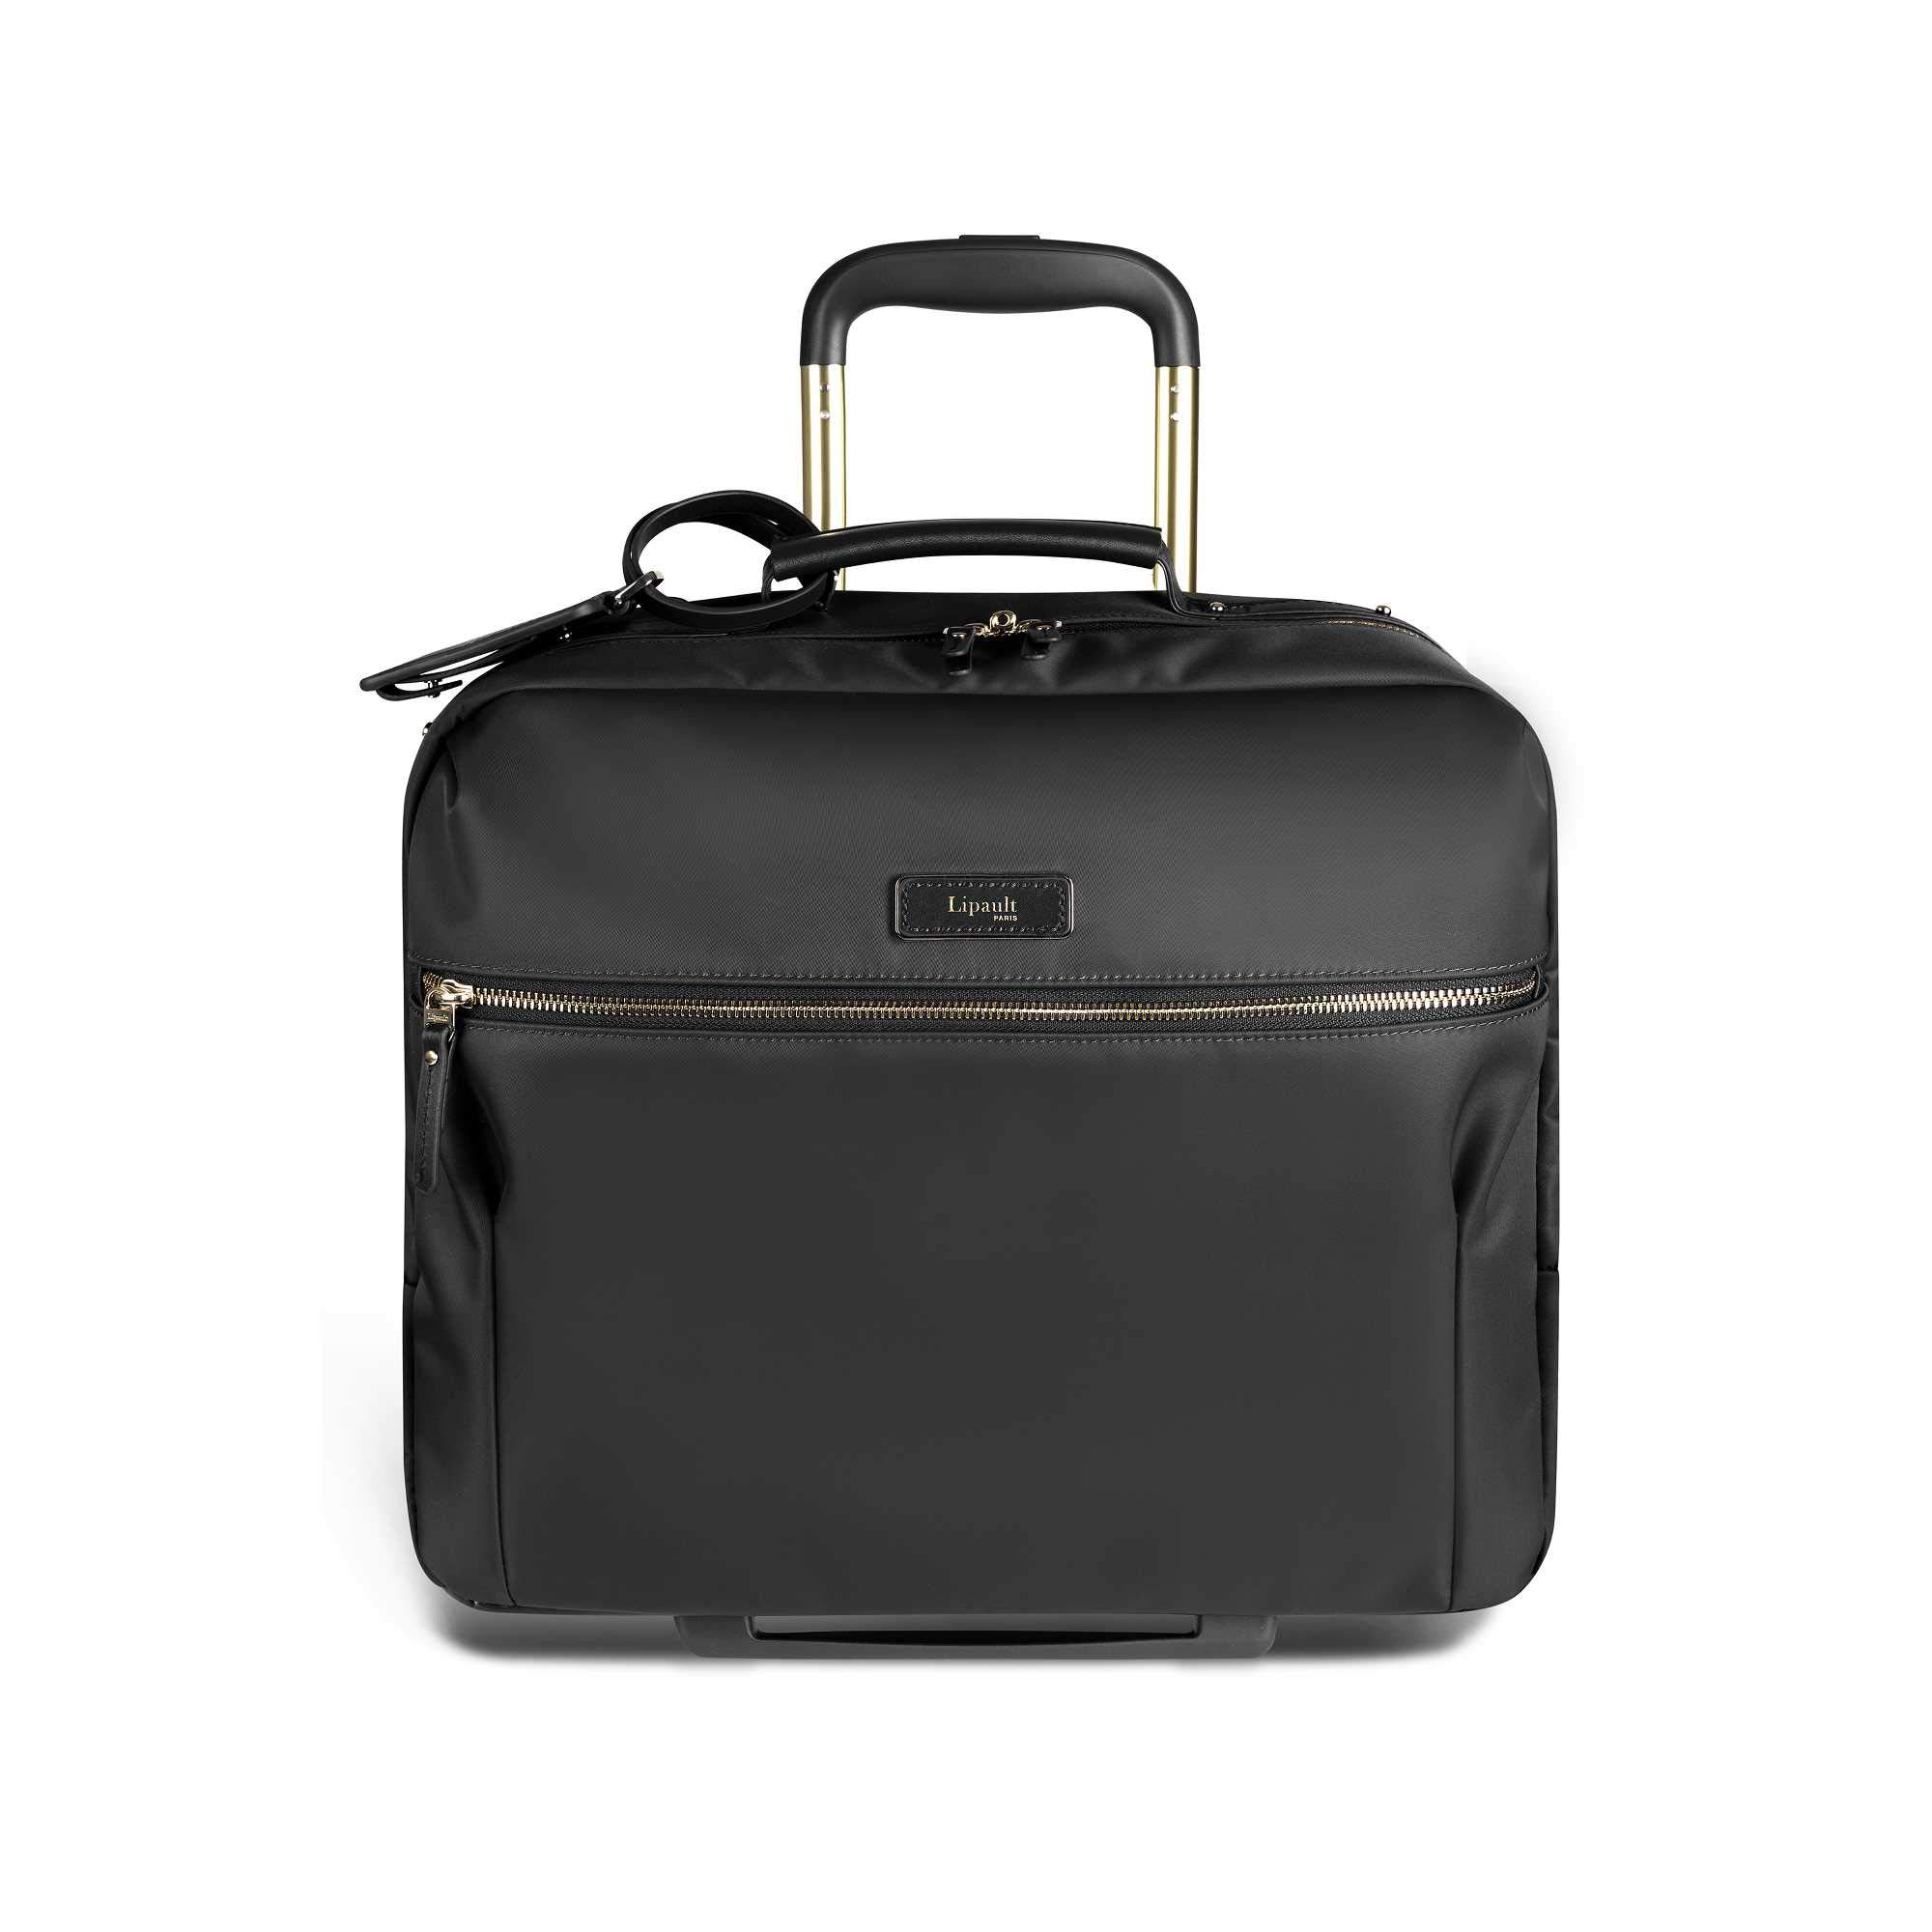 Lipault - Business Avenue Rolling Tote - 15'' Laptop Wheeled Briefcase Bag for Women - Jet Black